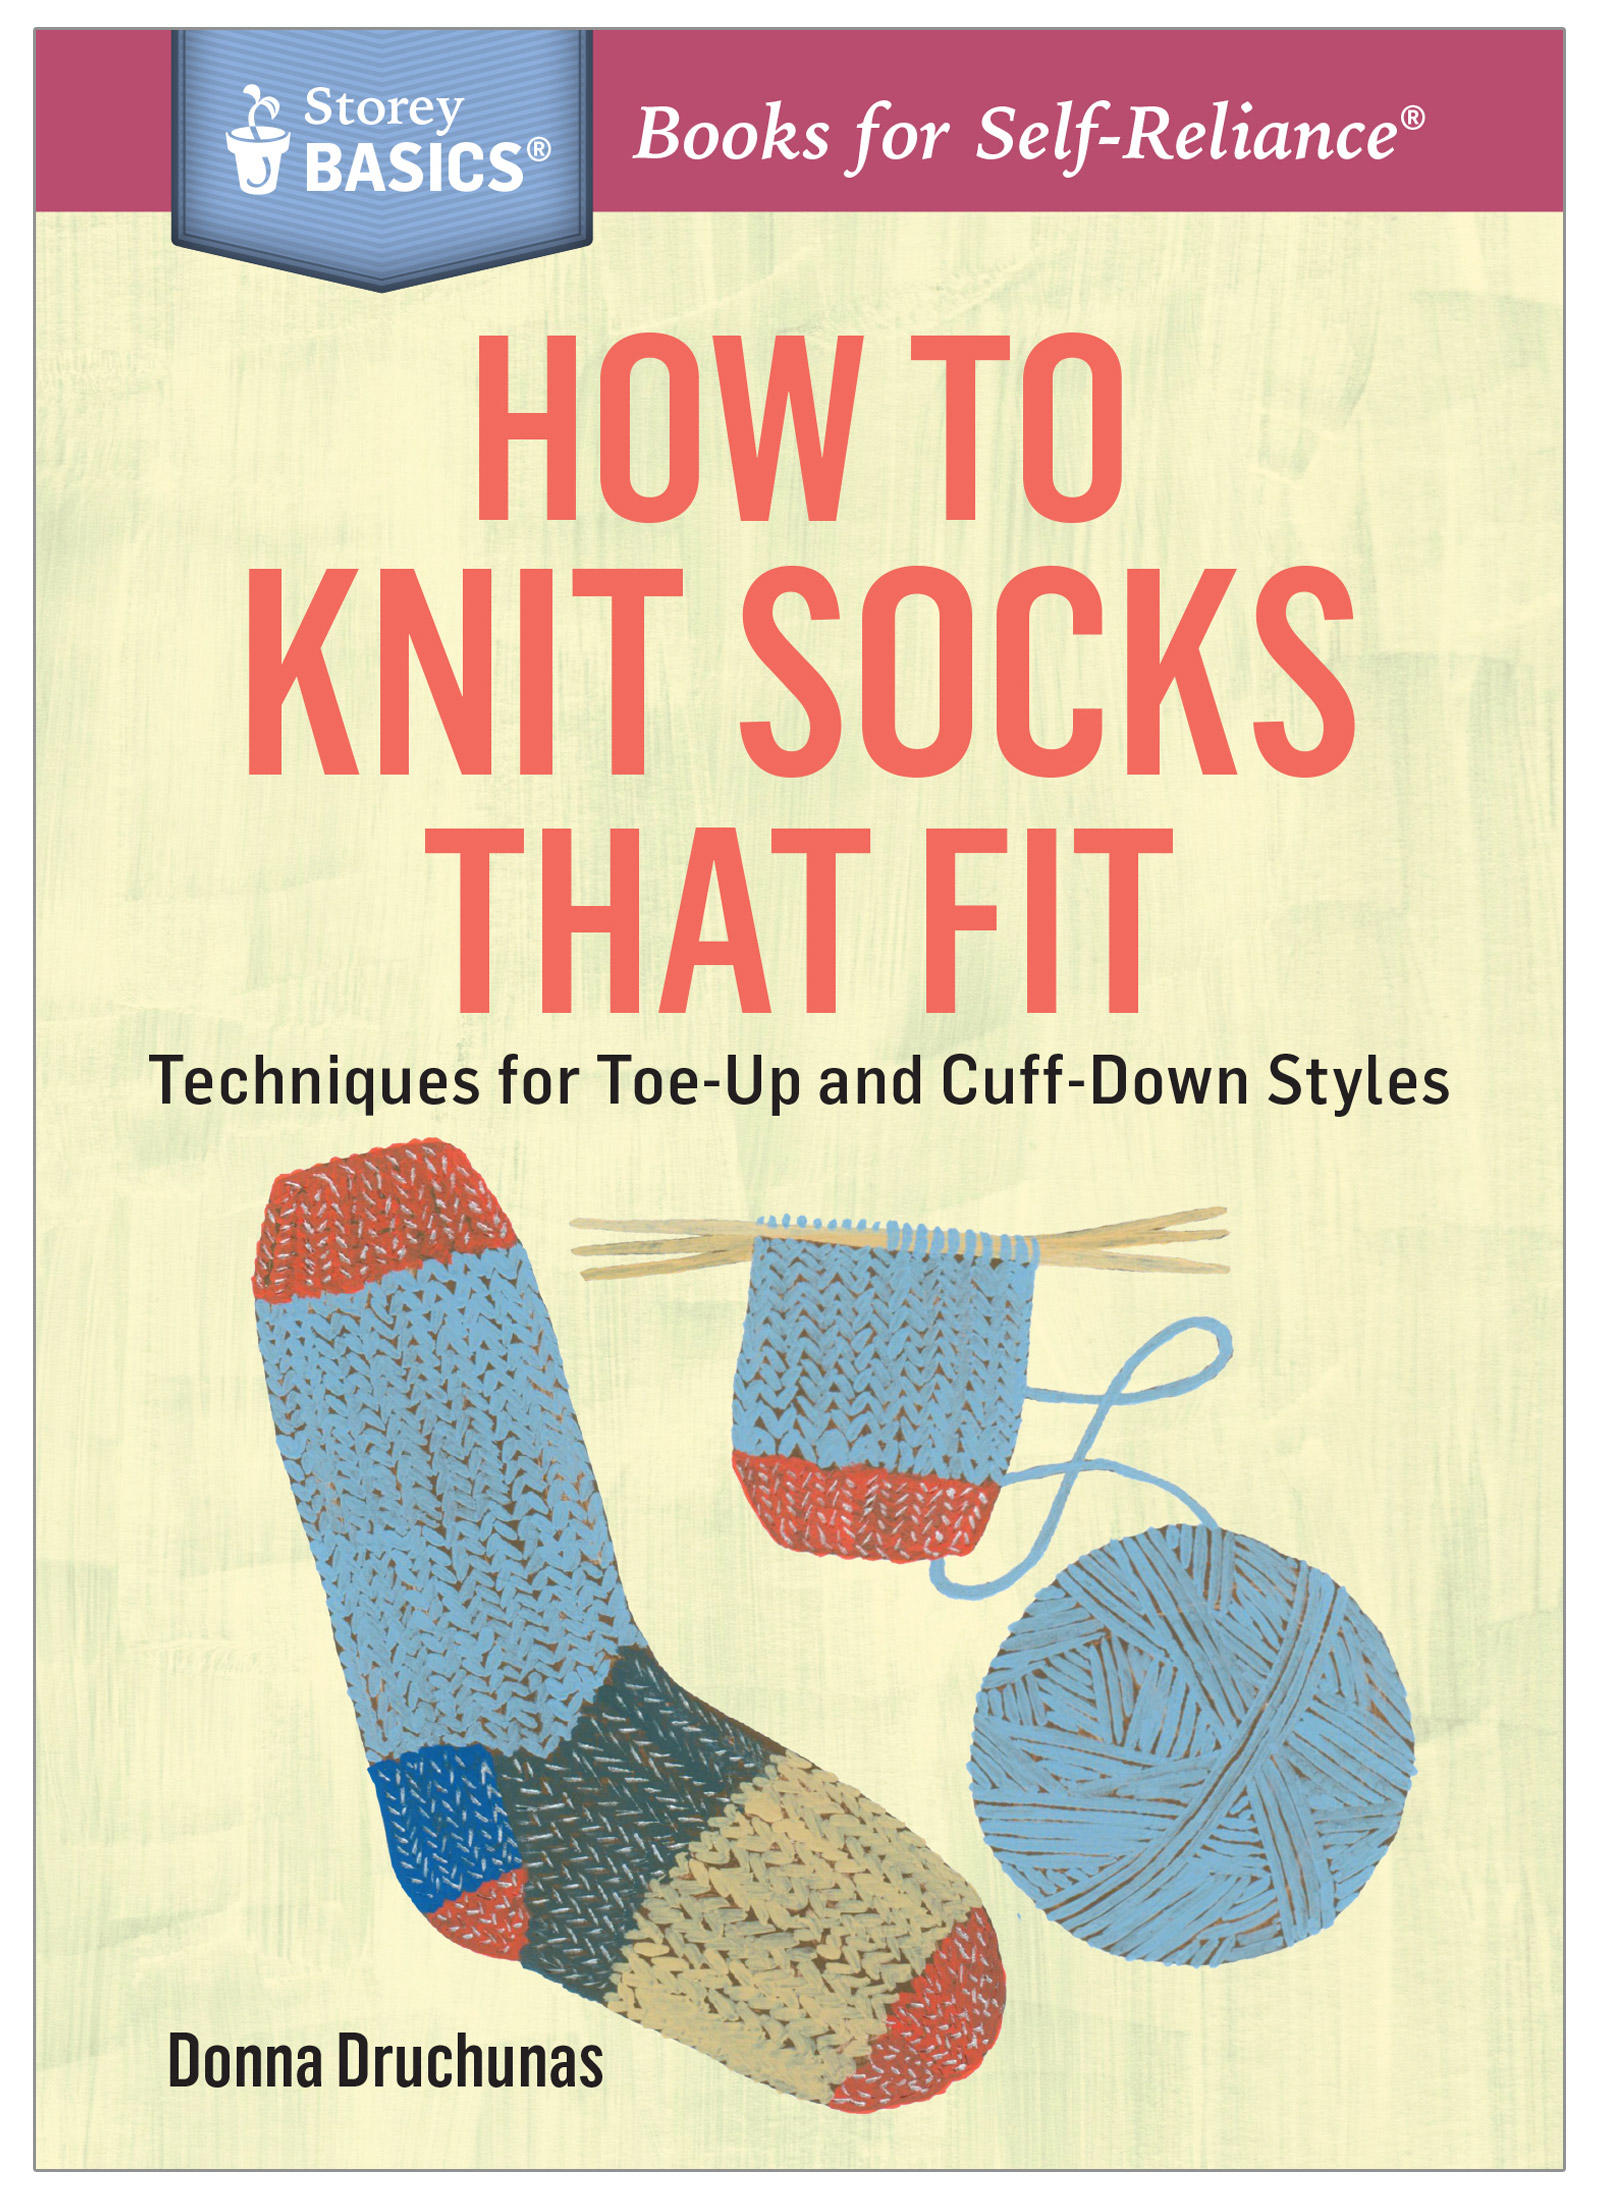 Basics:  How to Knit Socks That Fit by Donna Druchunas